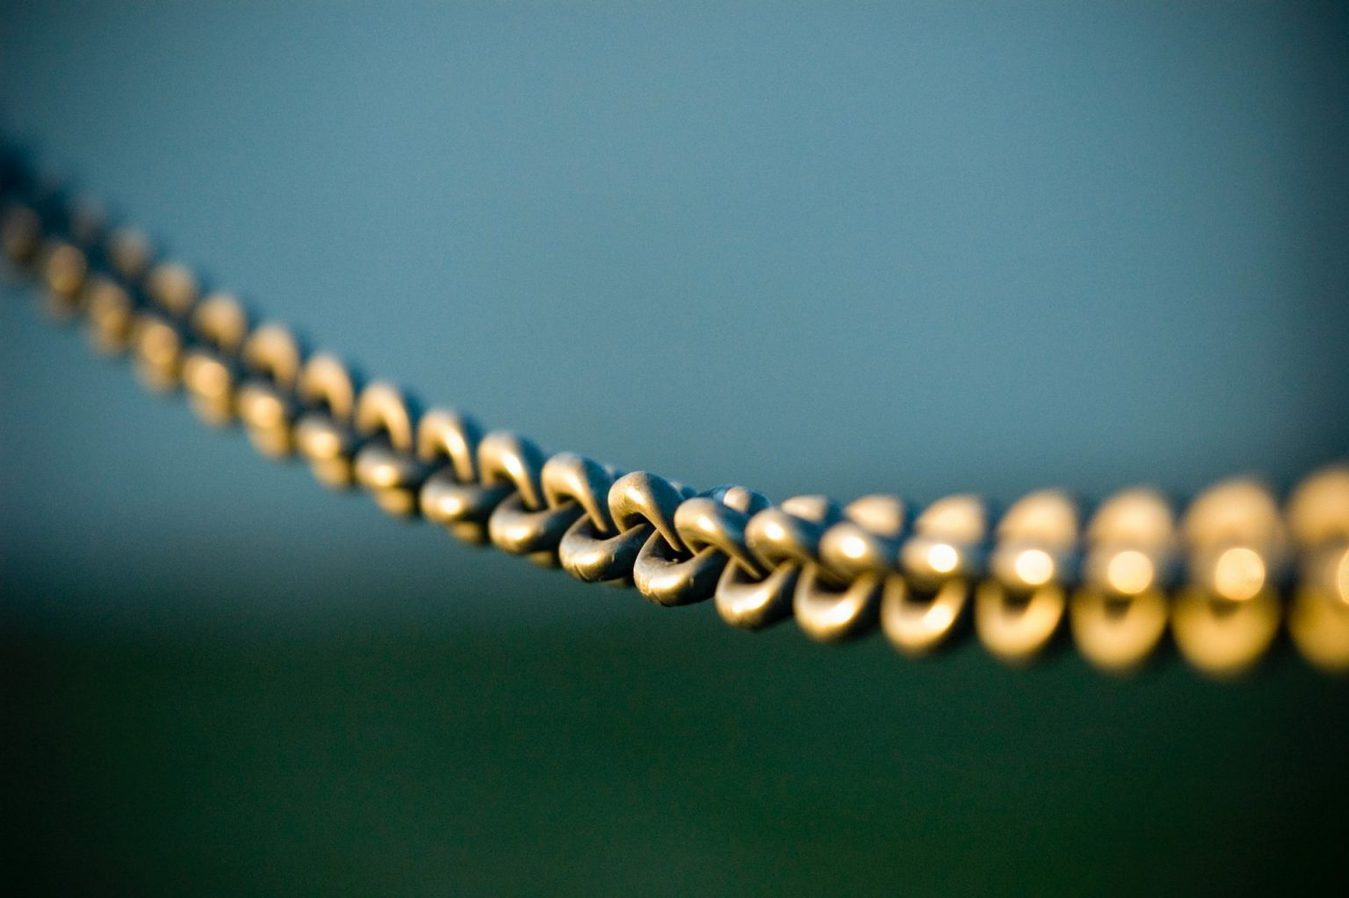 Link Chain close-up achtergrond in groen